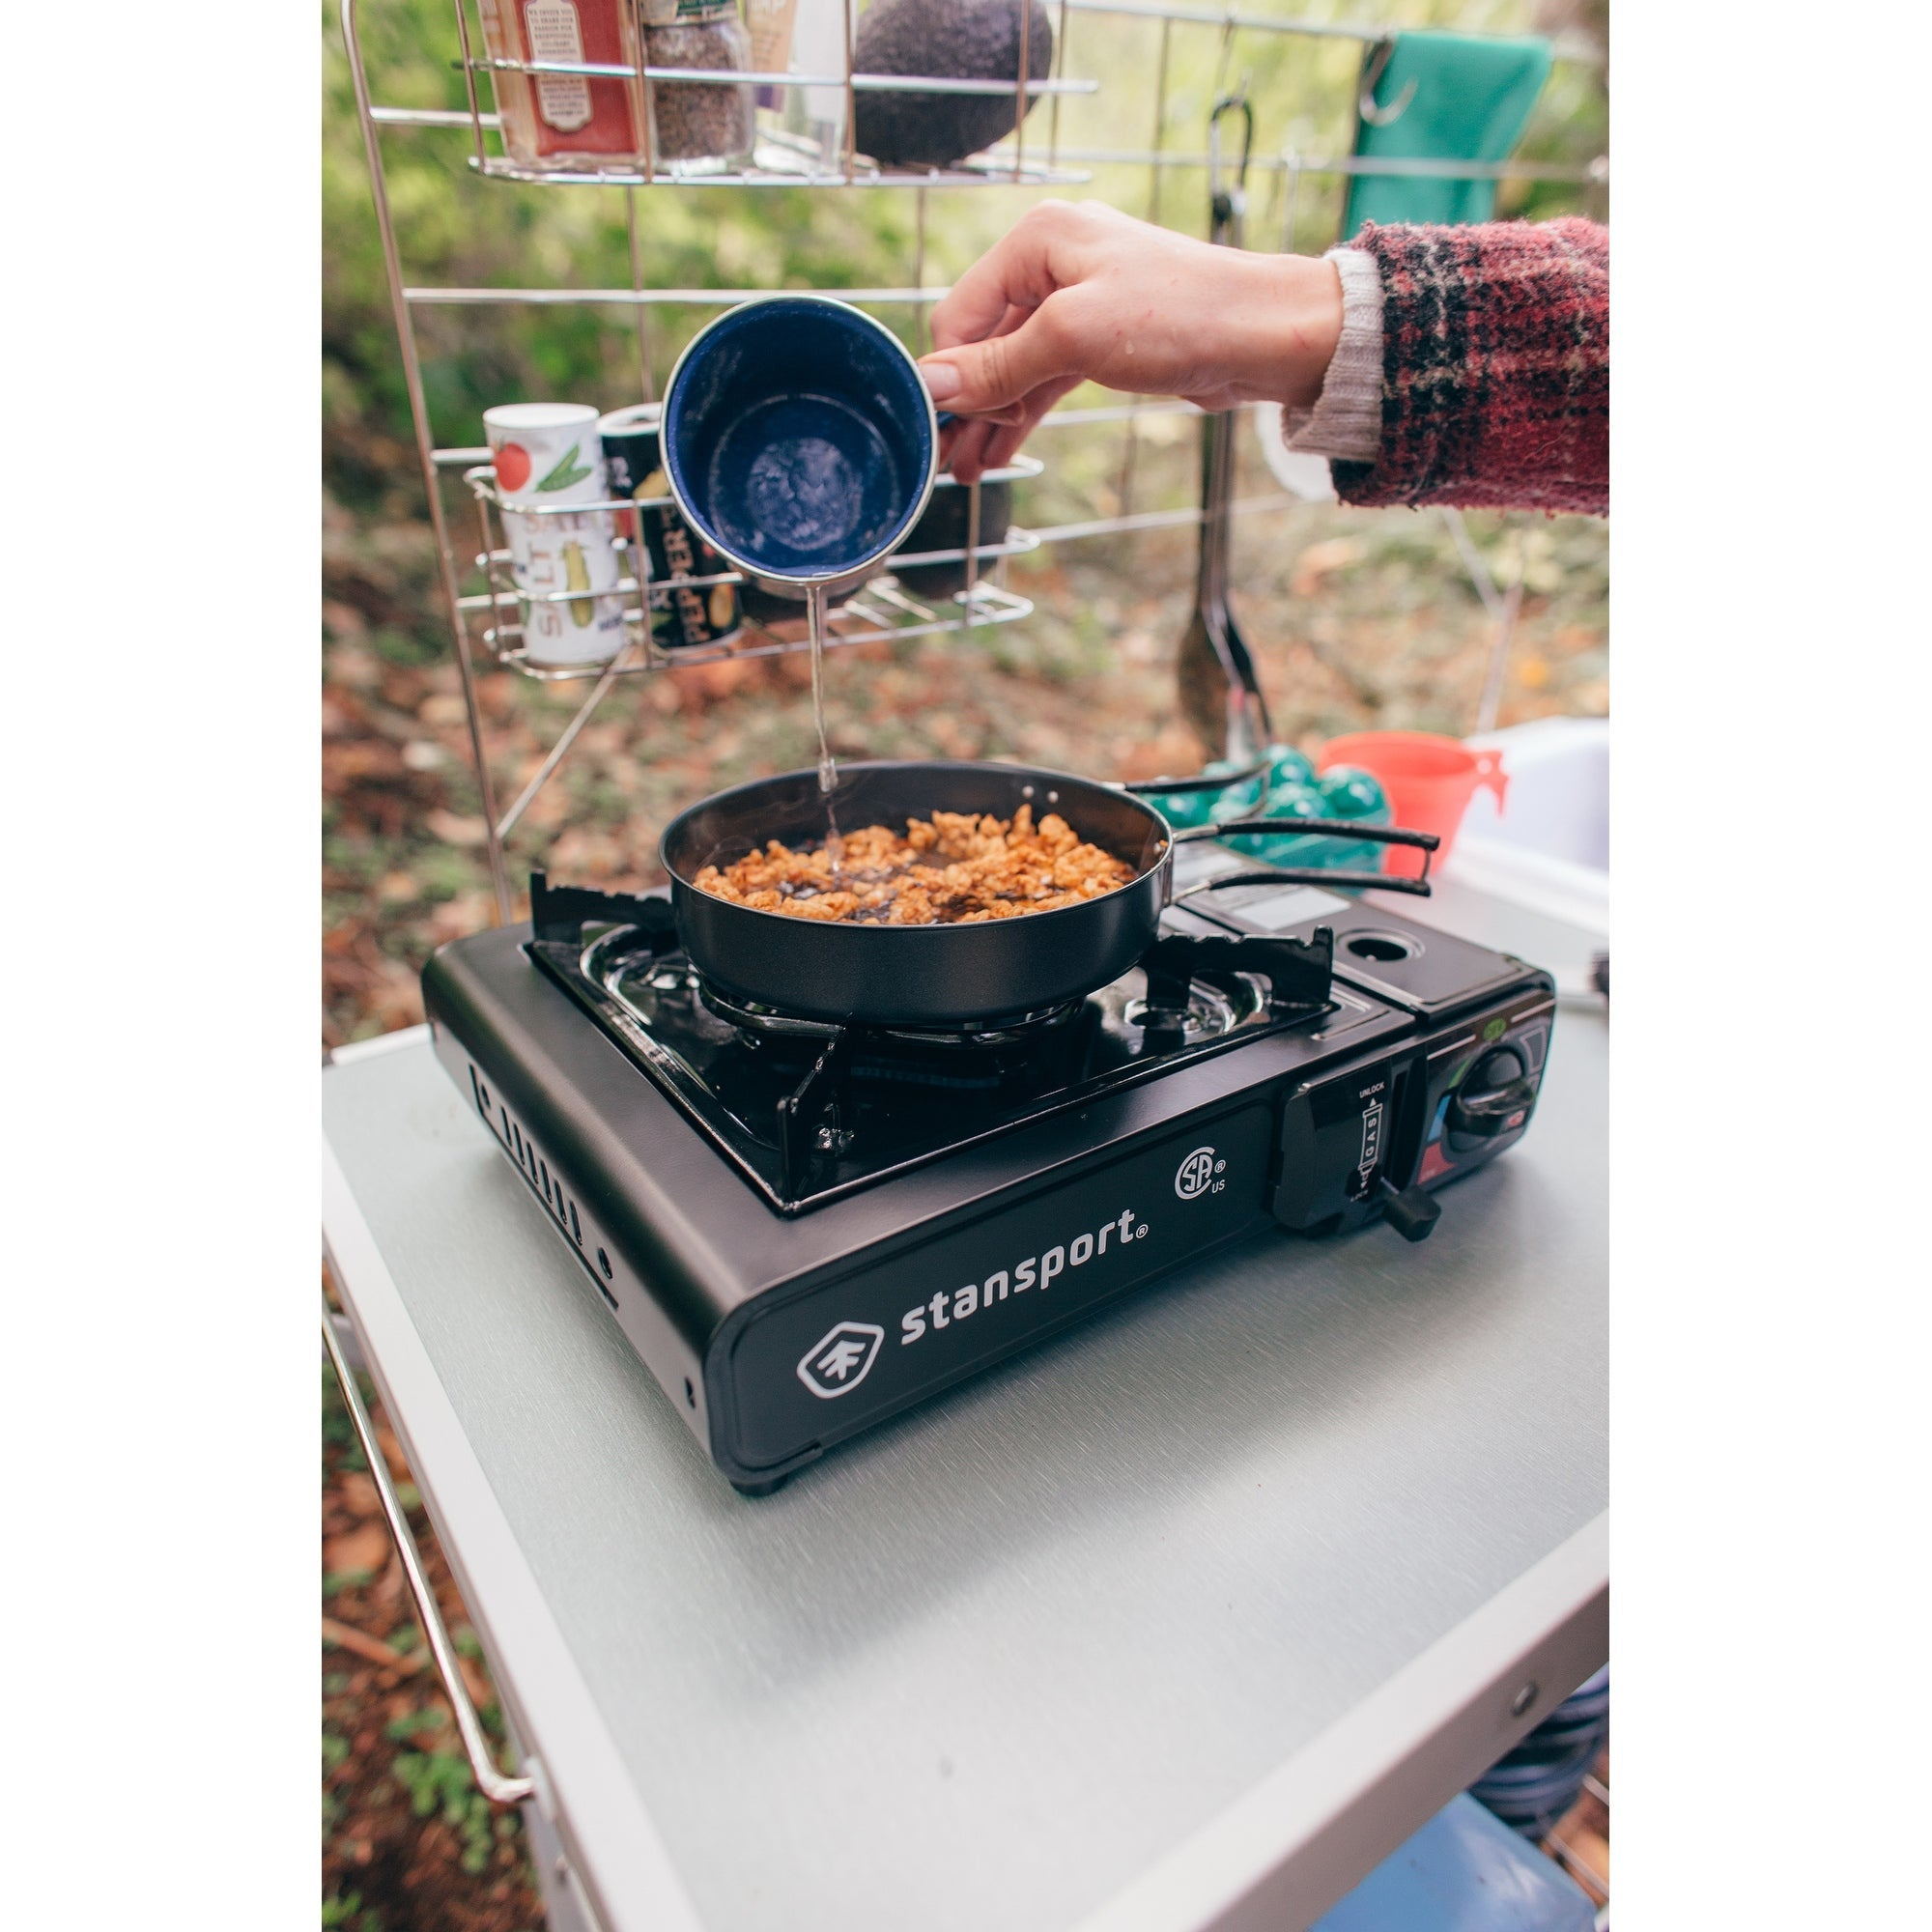 Stansport Portable Outdoor Butane Stove - Black - 13.38